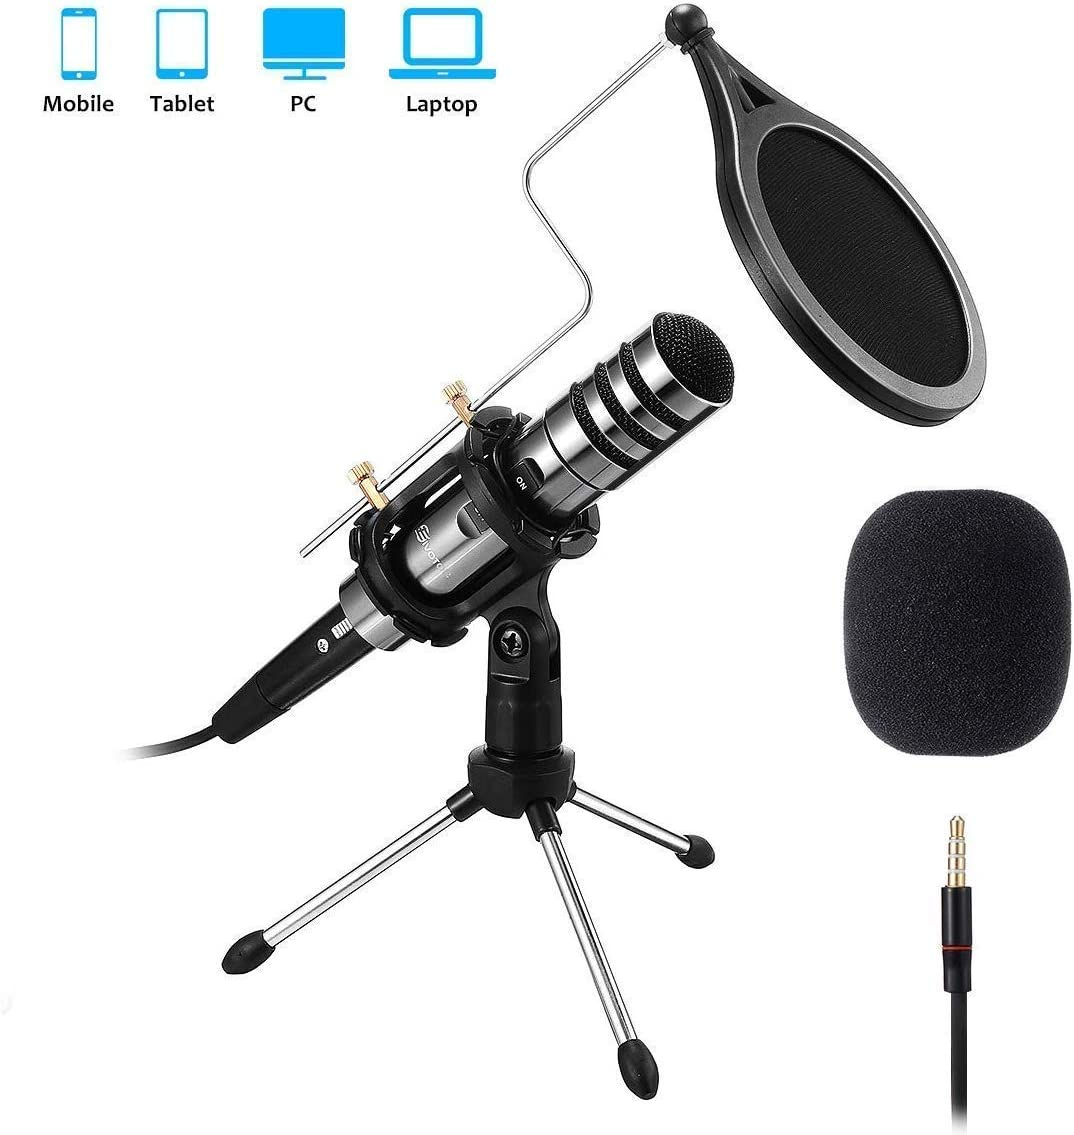 Recording Microphone, EIVOTOR 3.5mm Condenser Microphone Plug and Play, PC Microphone with Filter Suitable for Podcasting, Voice Recording, Skype, YouTube, Games, Laptop, Computer, Phone